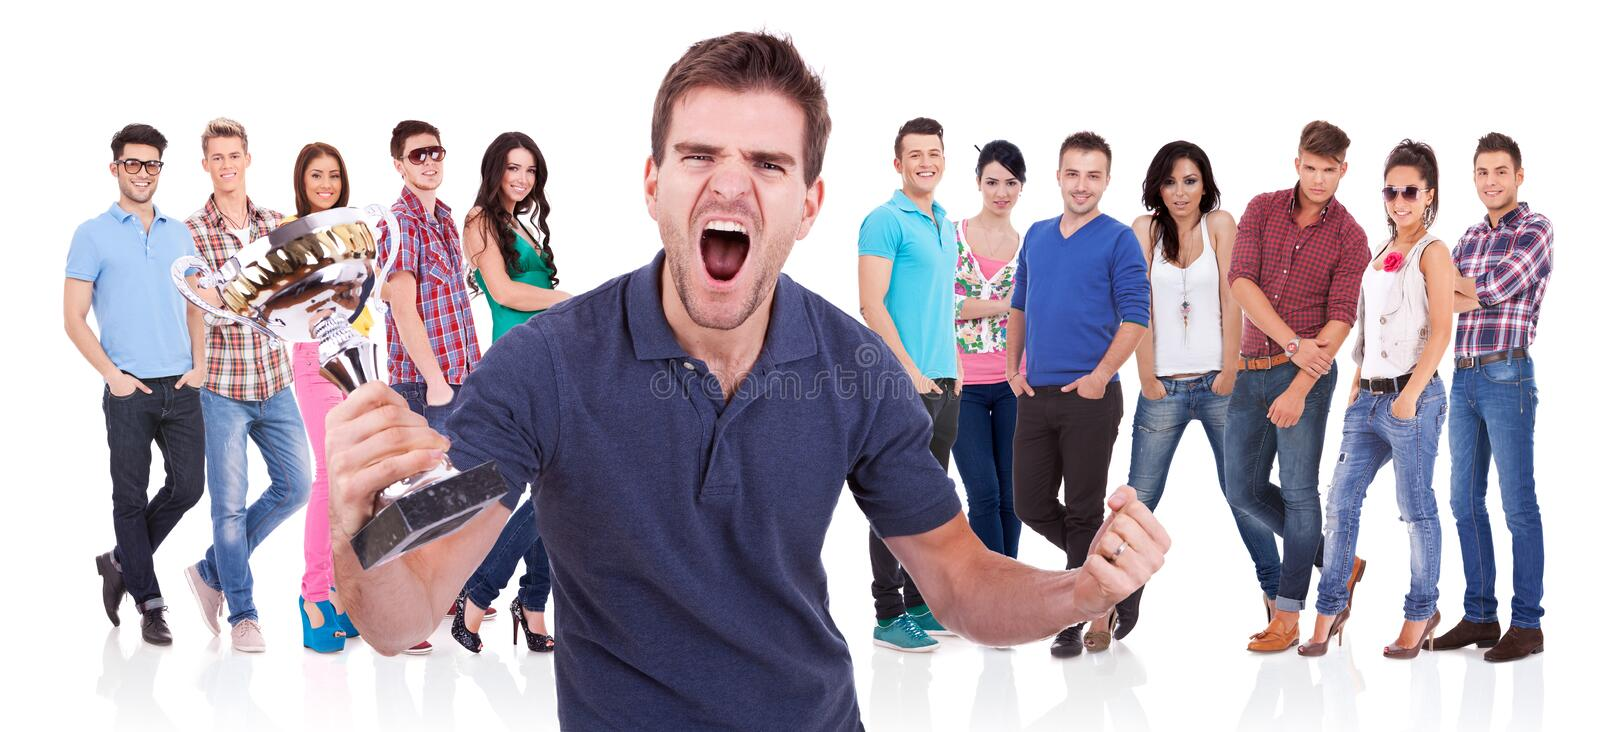 Download Casual Man Winning A Trophy And Screaming Stock Photo - Image: 28782732